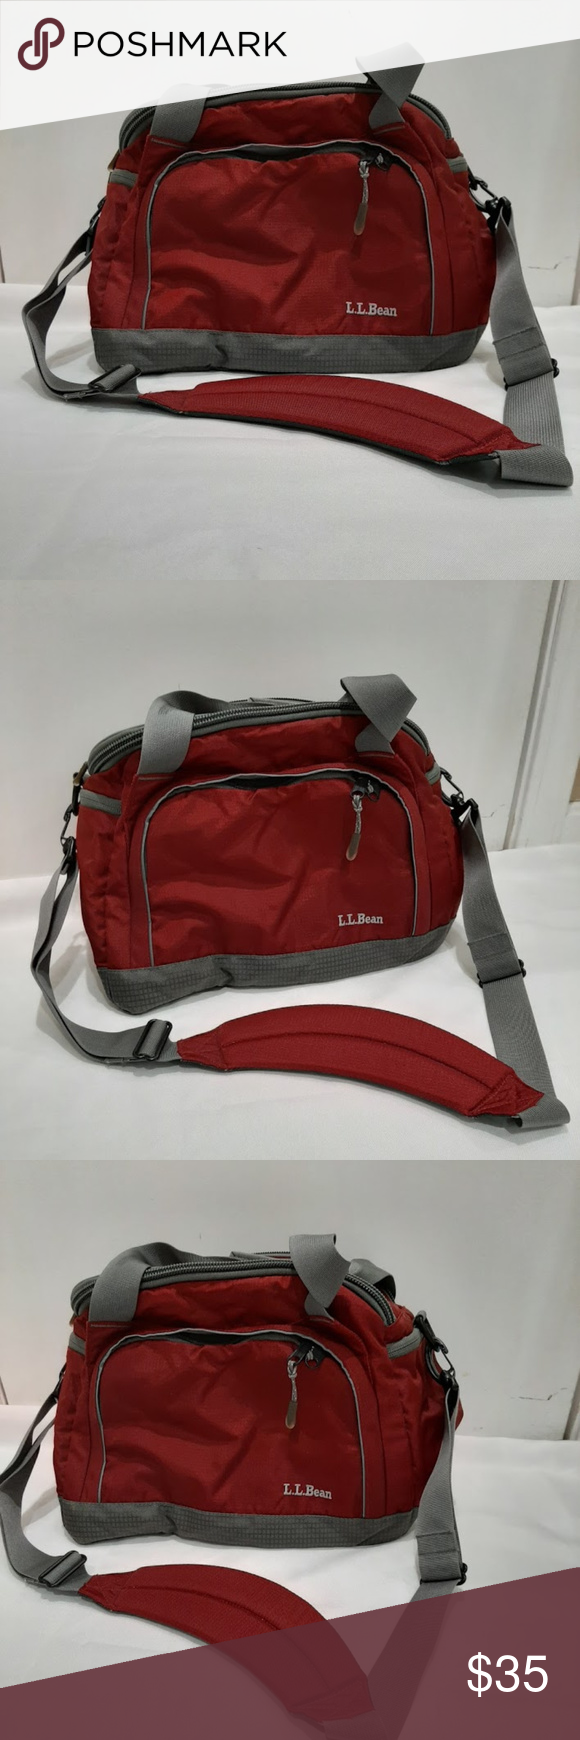 Ll Bean Shoulder Strap Luggage Travel Bag Nwot Up For Sale Is A New Without Tags L L Bean Shoulder Strap Compact Carry On Trave In 2020 Bags Travel Bag Travel Luggage